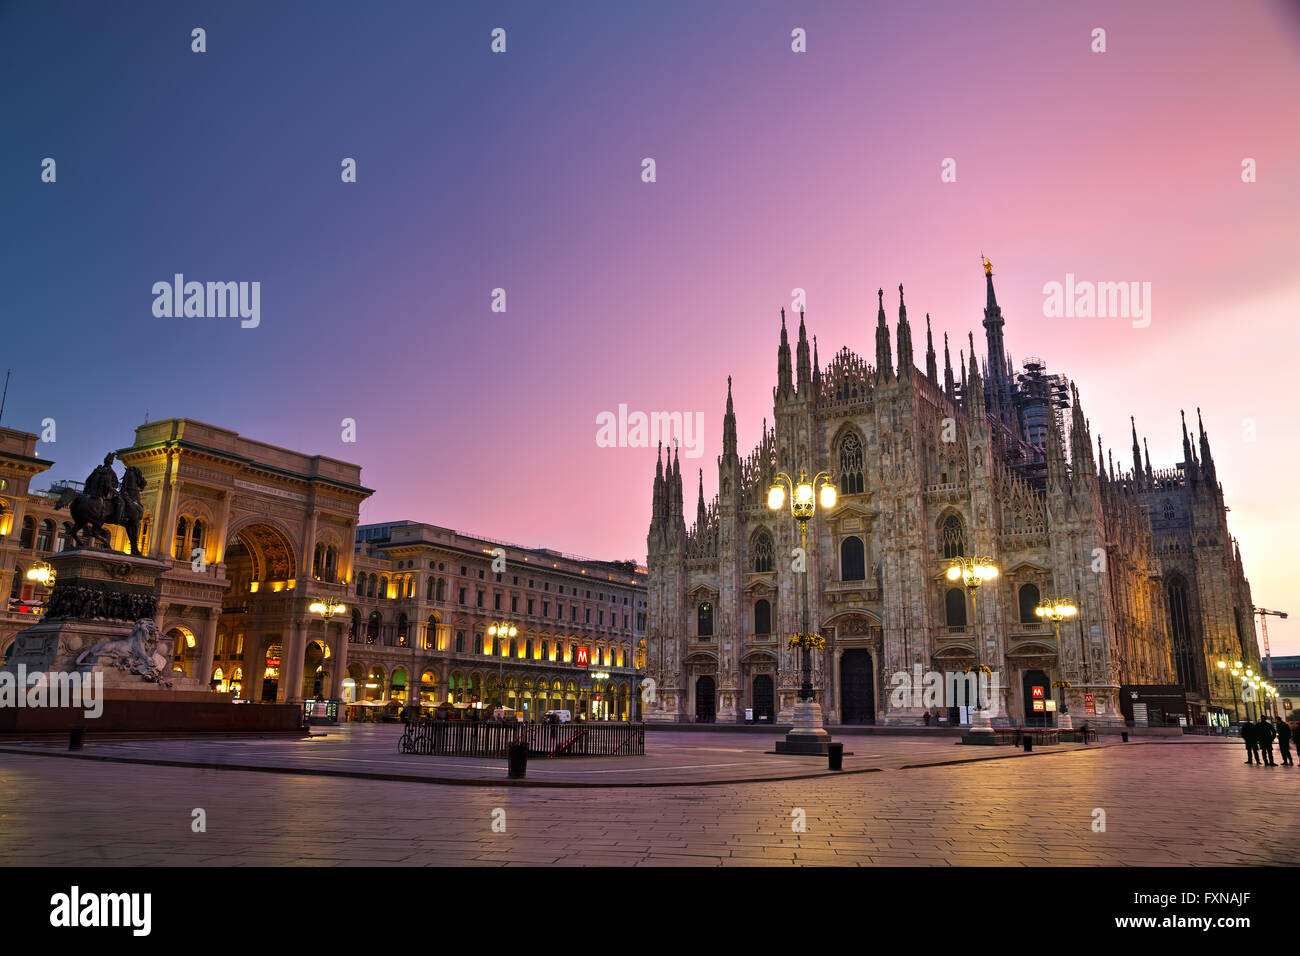 MILAN, ITALY - NOVEMBER 25: Duomo cathedral with people early in the morning on November 25, 2015 in Milan, Italy. - Stock Image